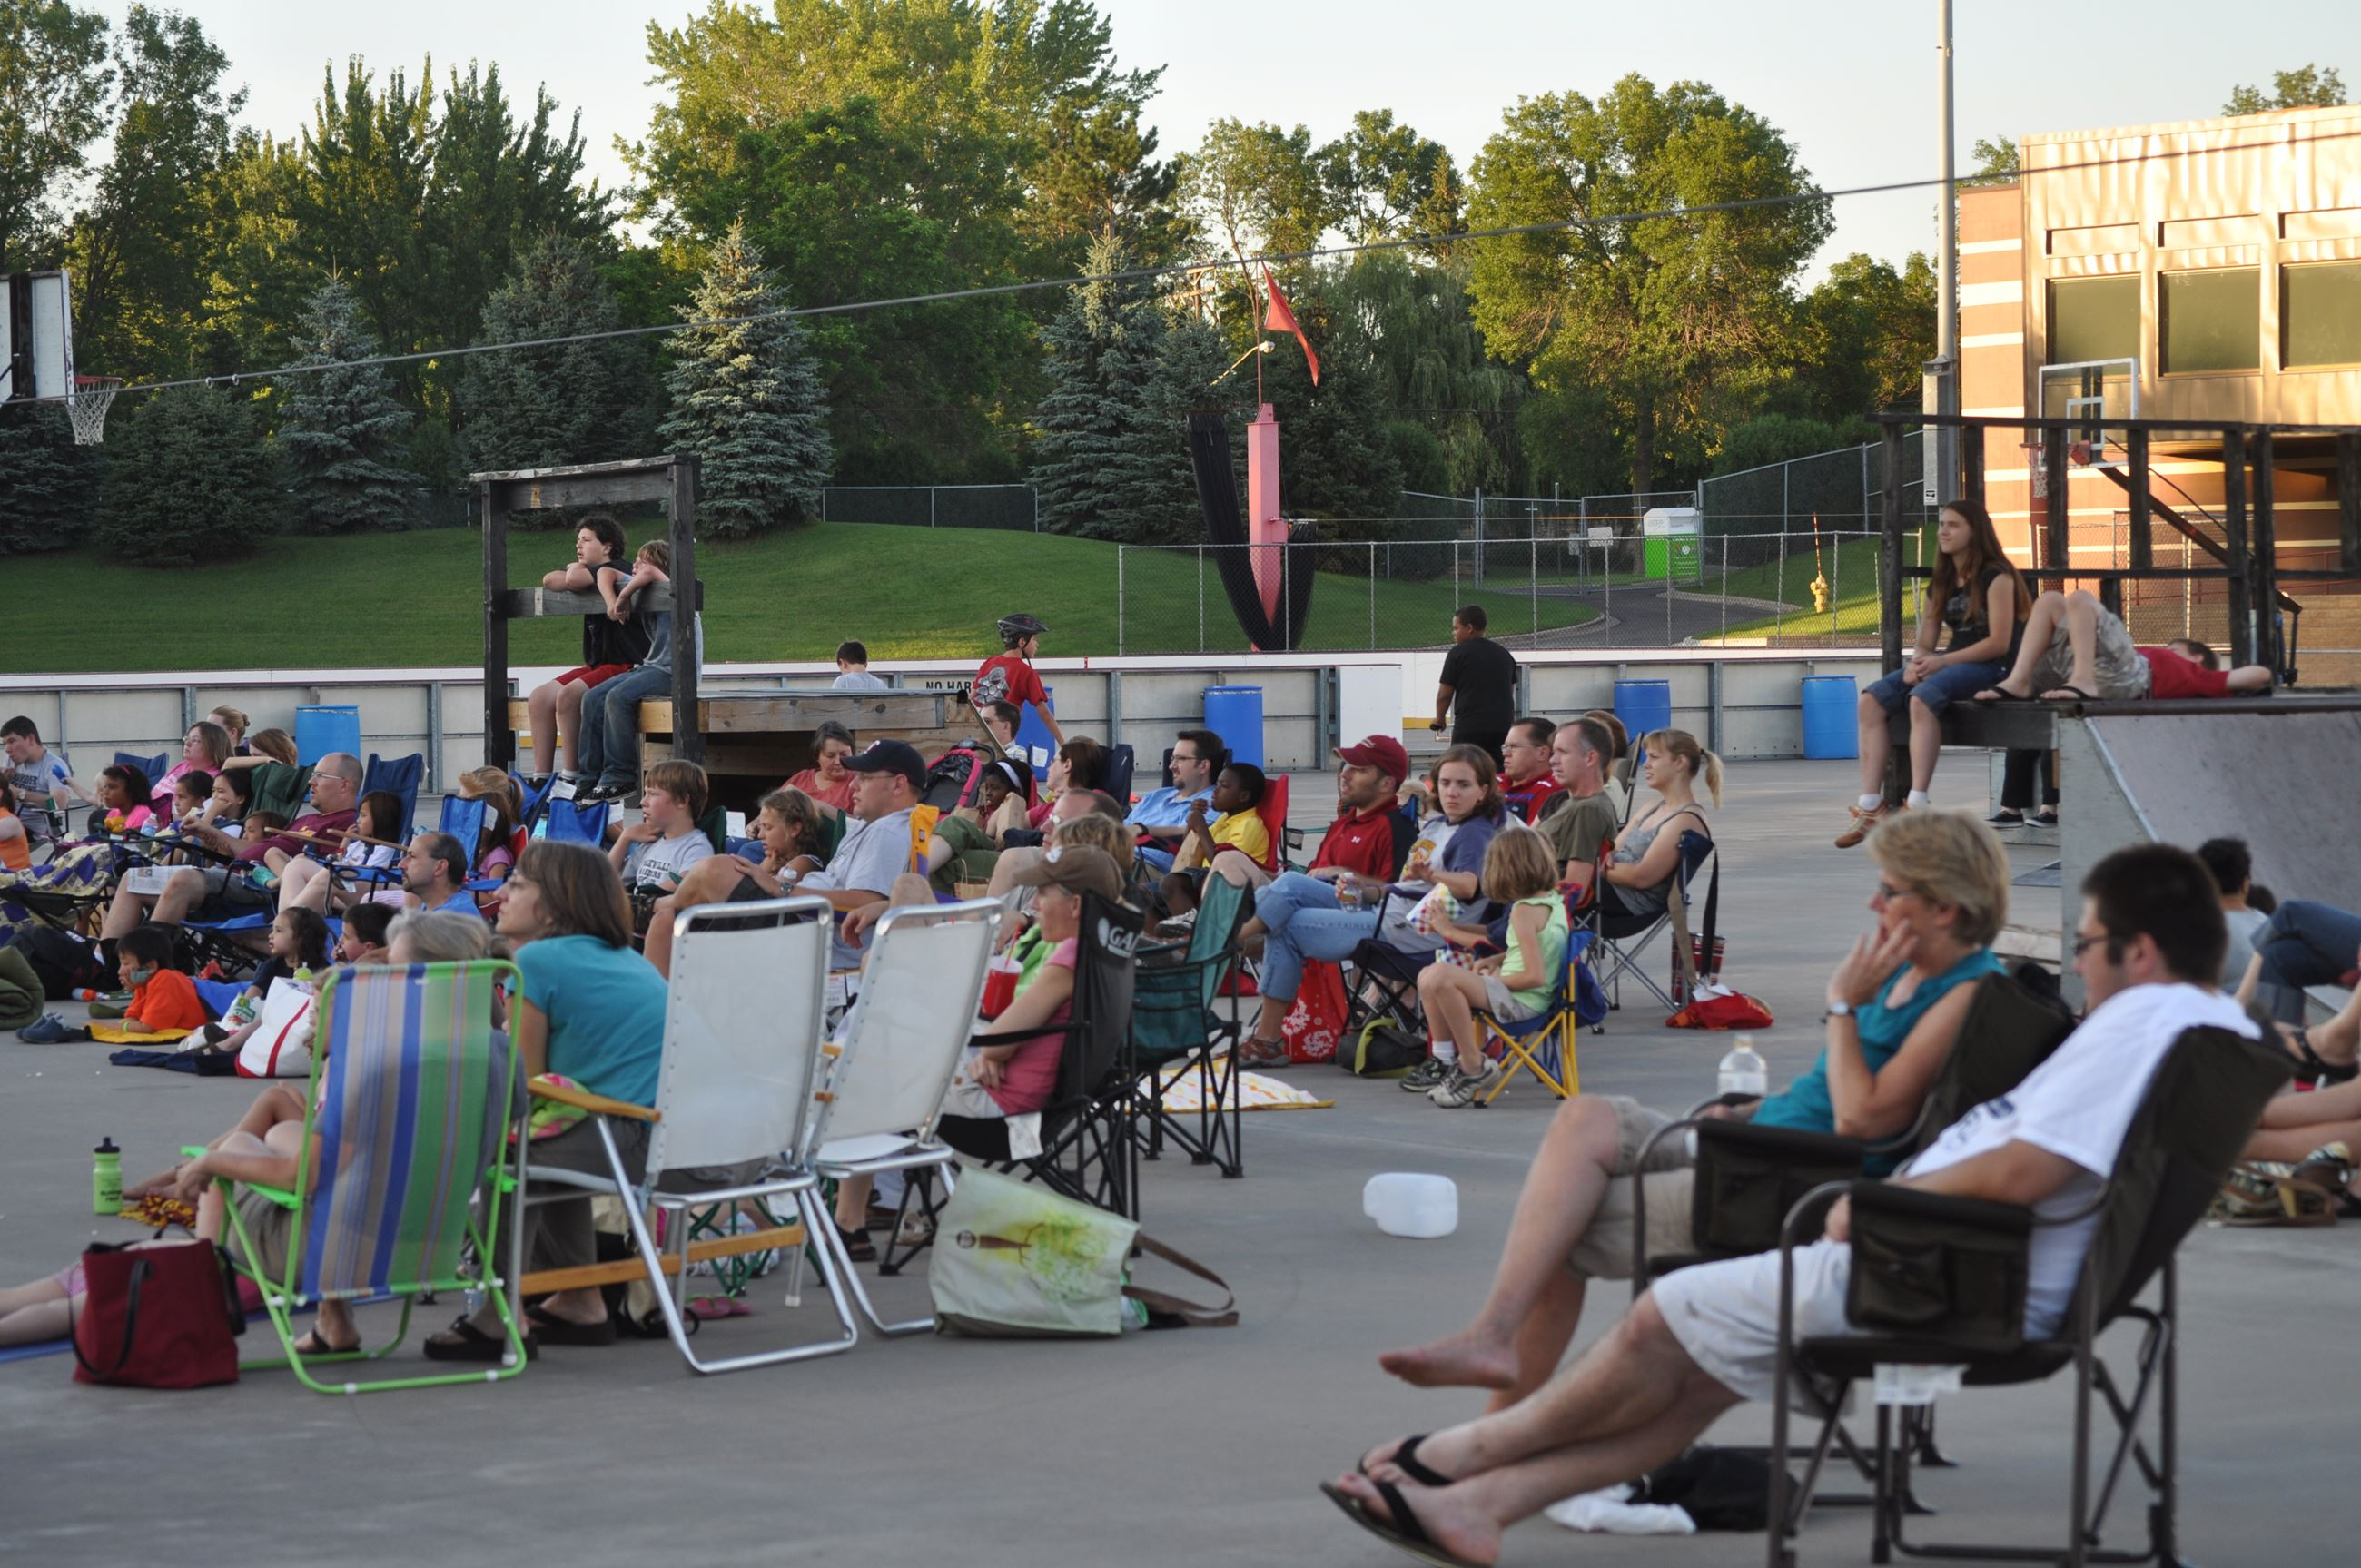 Patrons watch Movie at John Rose MN OVAL